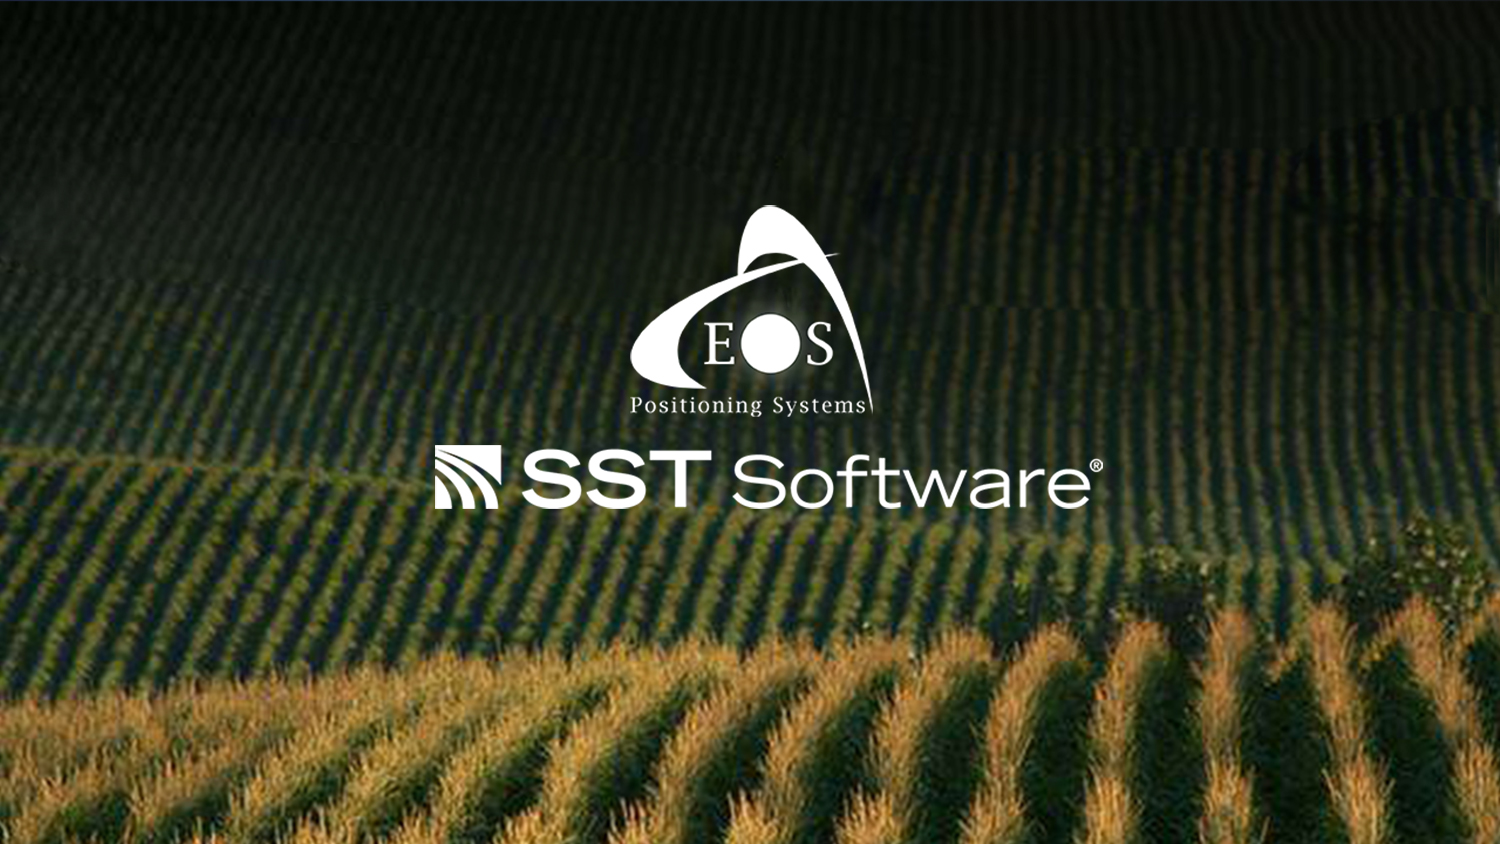 Press Release - Partnership- Eos Positioning Confirms Partnership with SST Software Agriculture GIS mobile mapping GNSS GPS